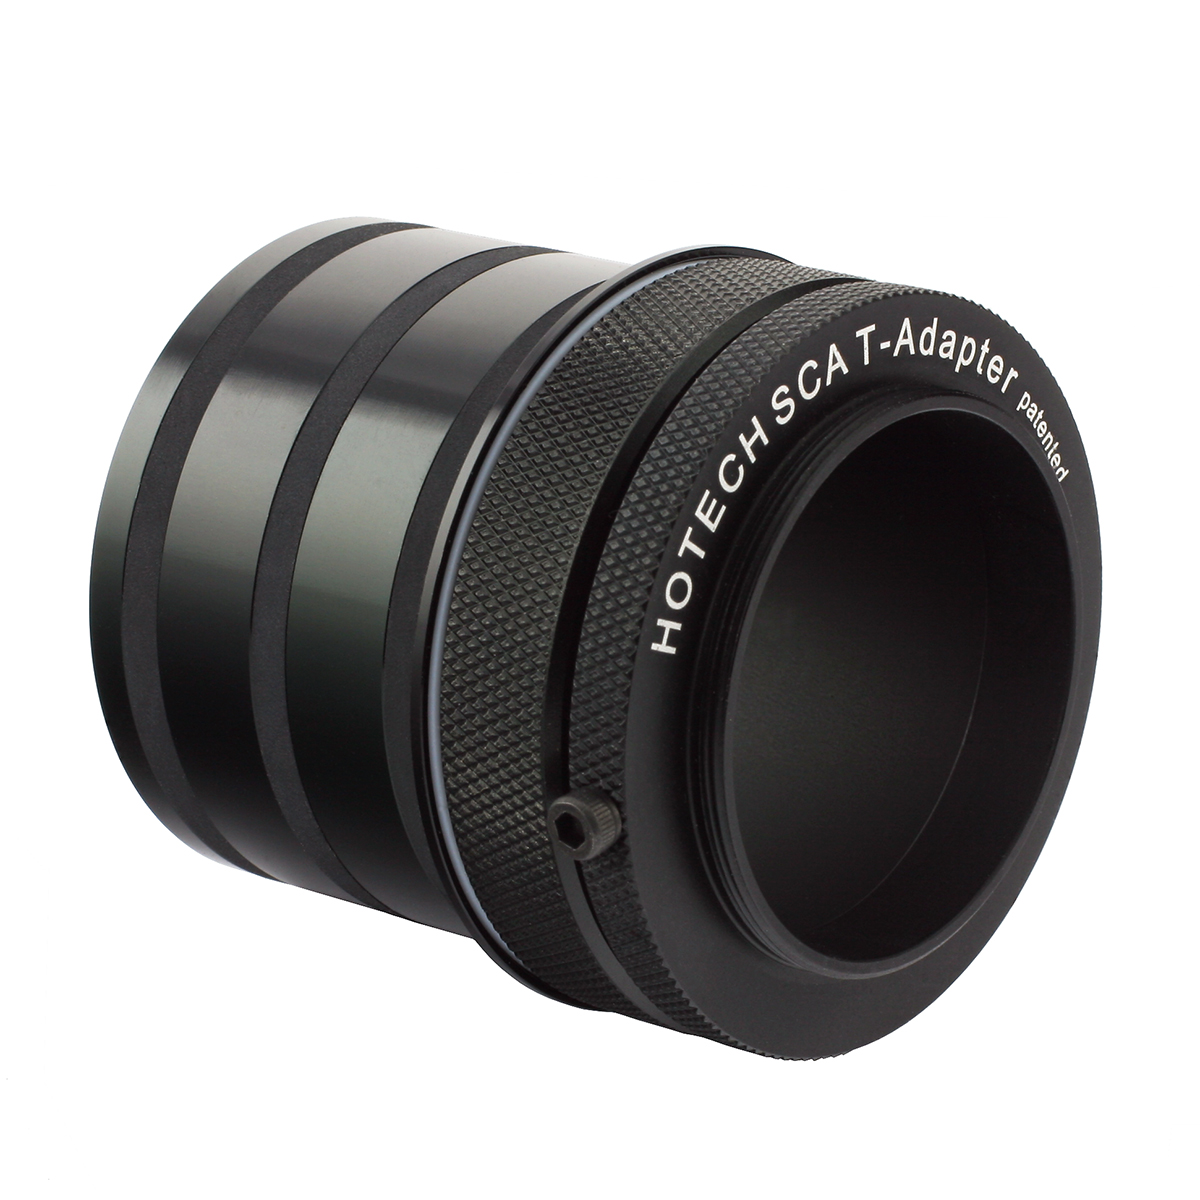 Hotech 2'' SCA T-Adapter